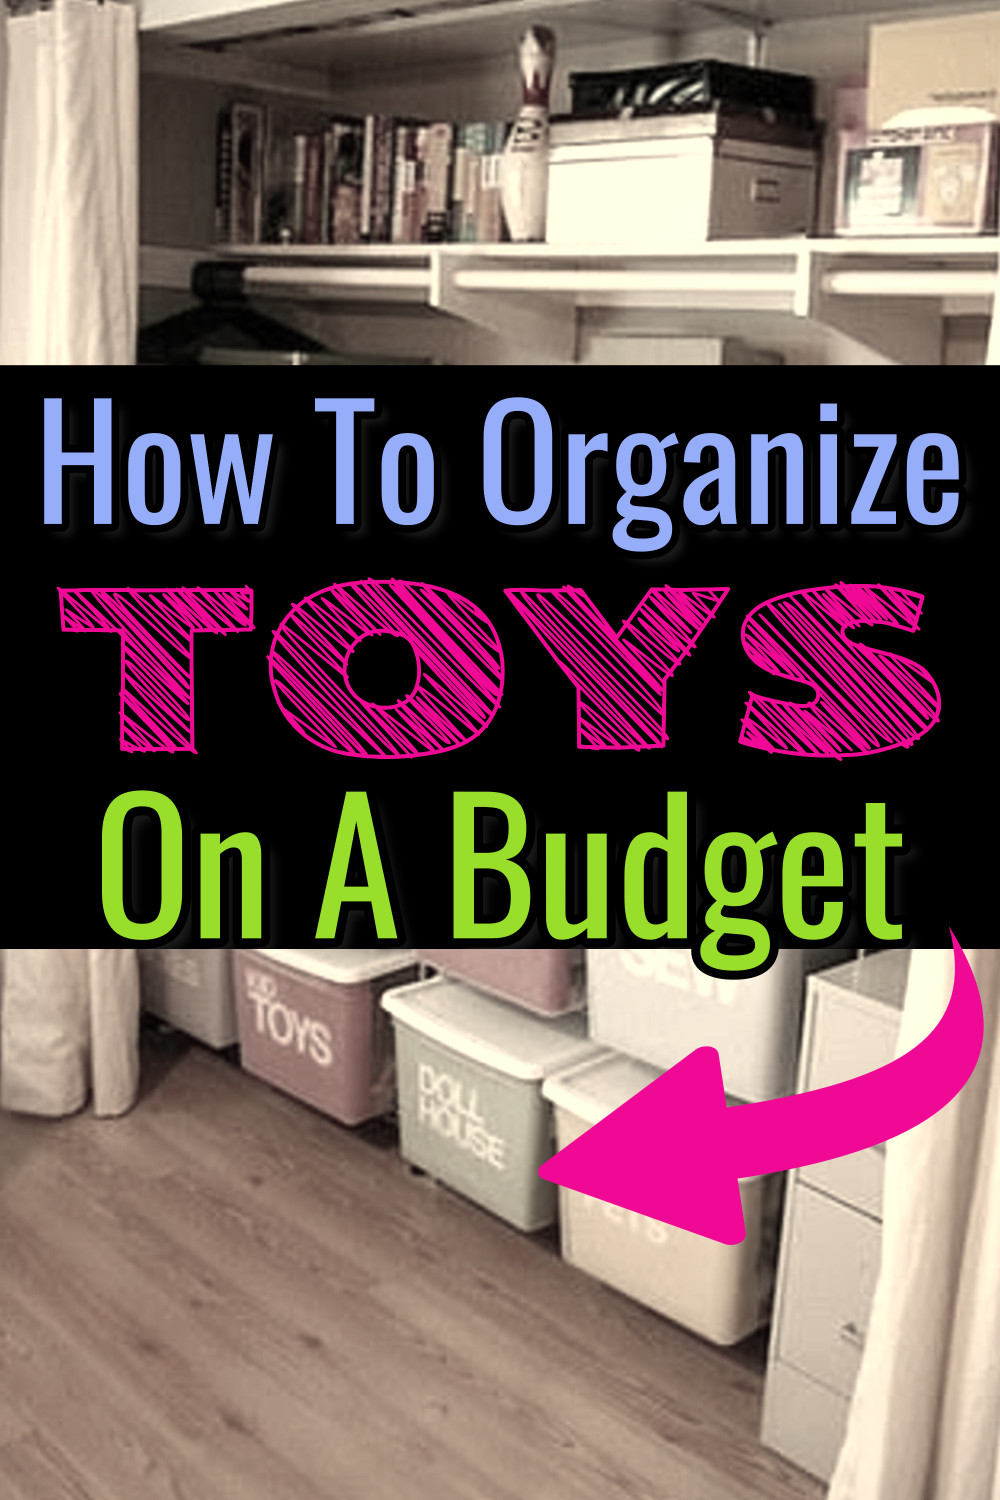 Organizing Toys - let's declutter and organize toys in the playroom, living room, bedroom, in your kids toy closet or their room even if you're on a budget with these cheap DIY Dollar Store toy storage ideas for small spaces. Organizing toys in kids rooms and other toys storage solutions for small spaces - organize kids toys, games, books, stuffed animals, action figures, hot wheels and legos with these home organization ideas and tips - this is how to organize toys and declutter toy clutter